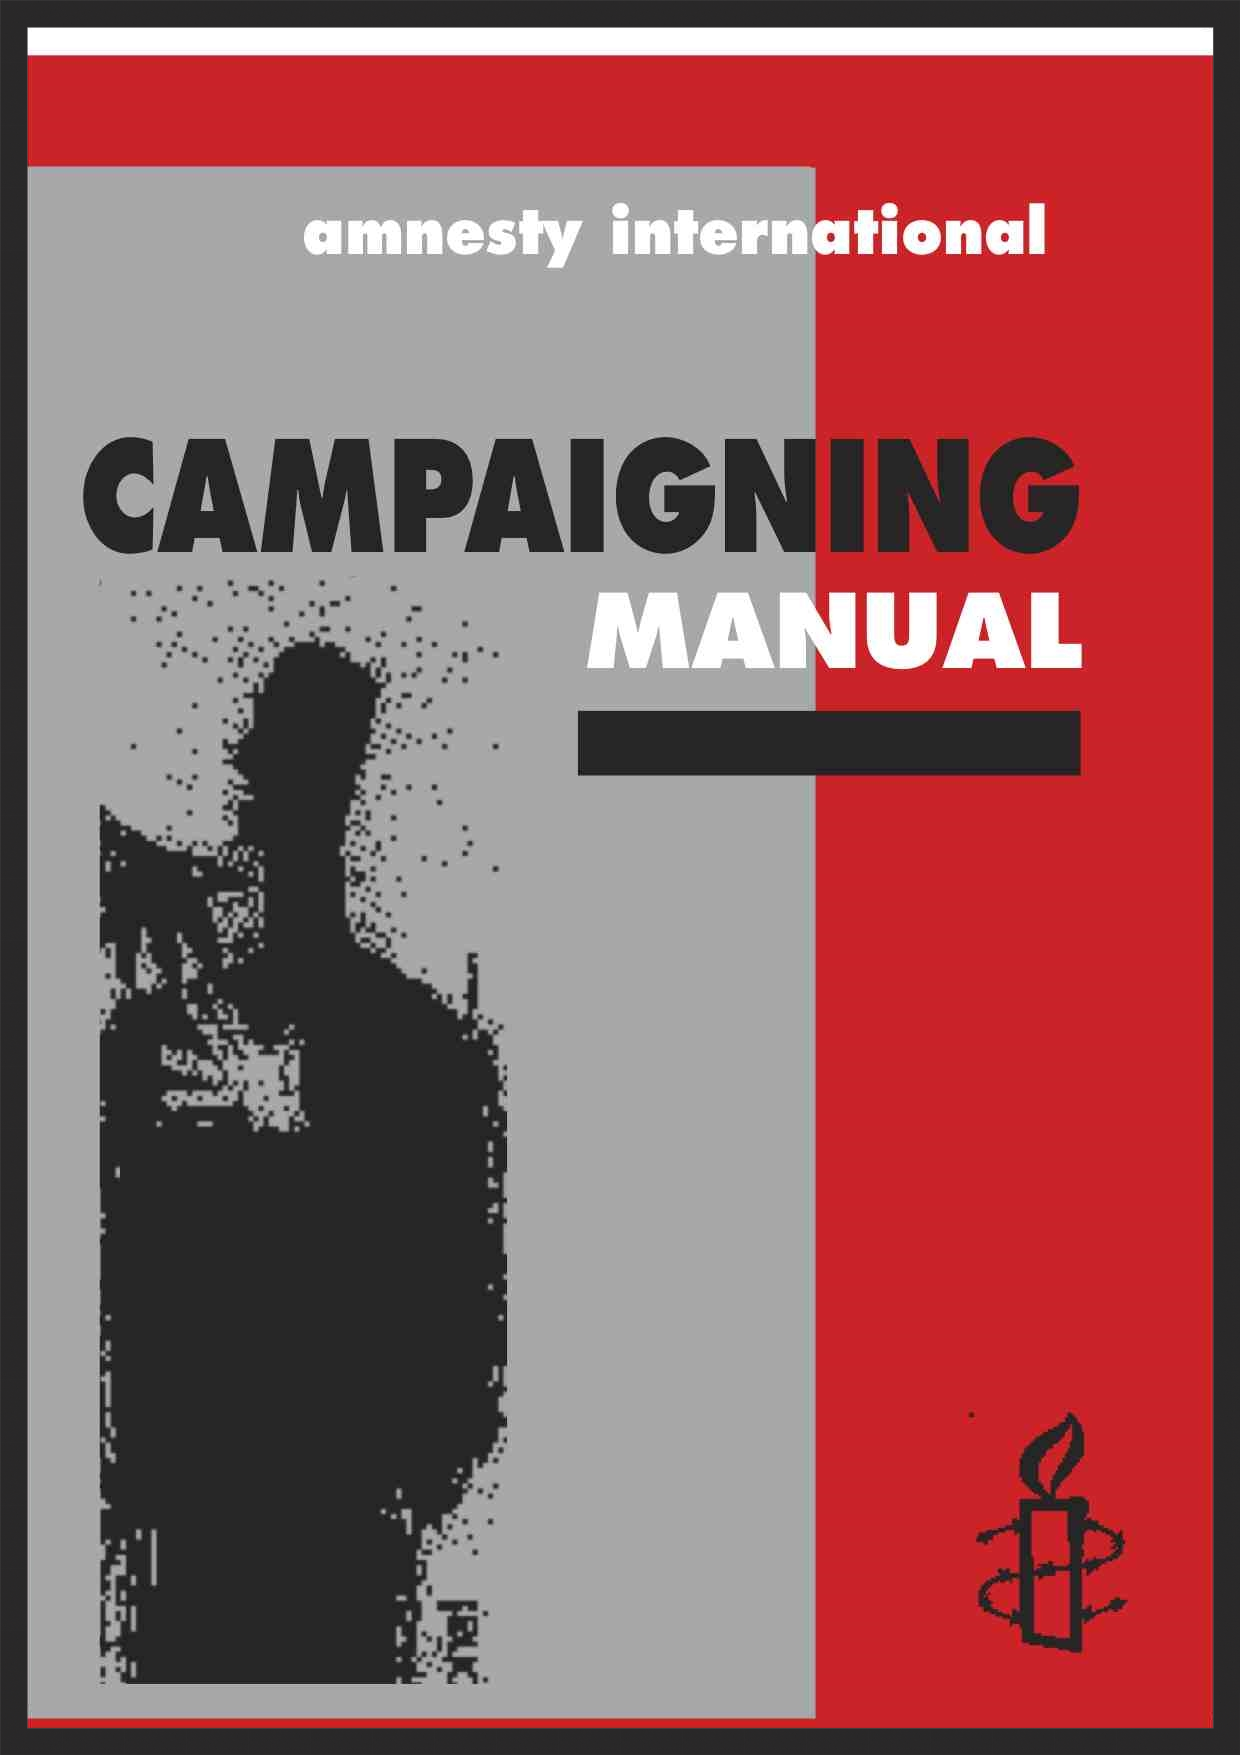 Human Rights Campaigning Manual (Amnesty International)